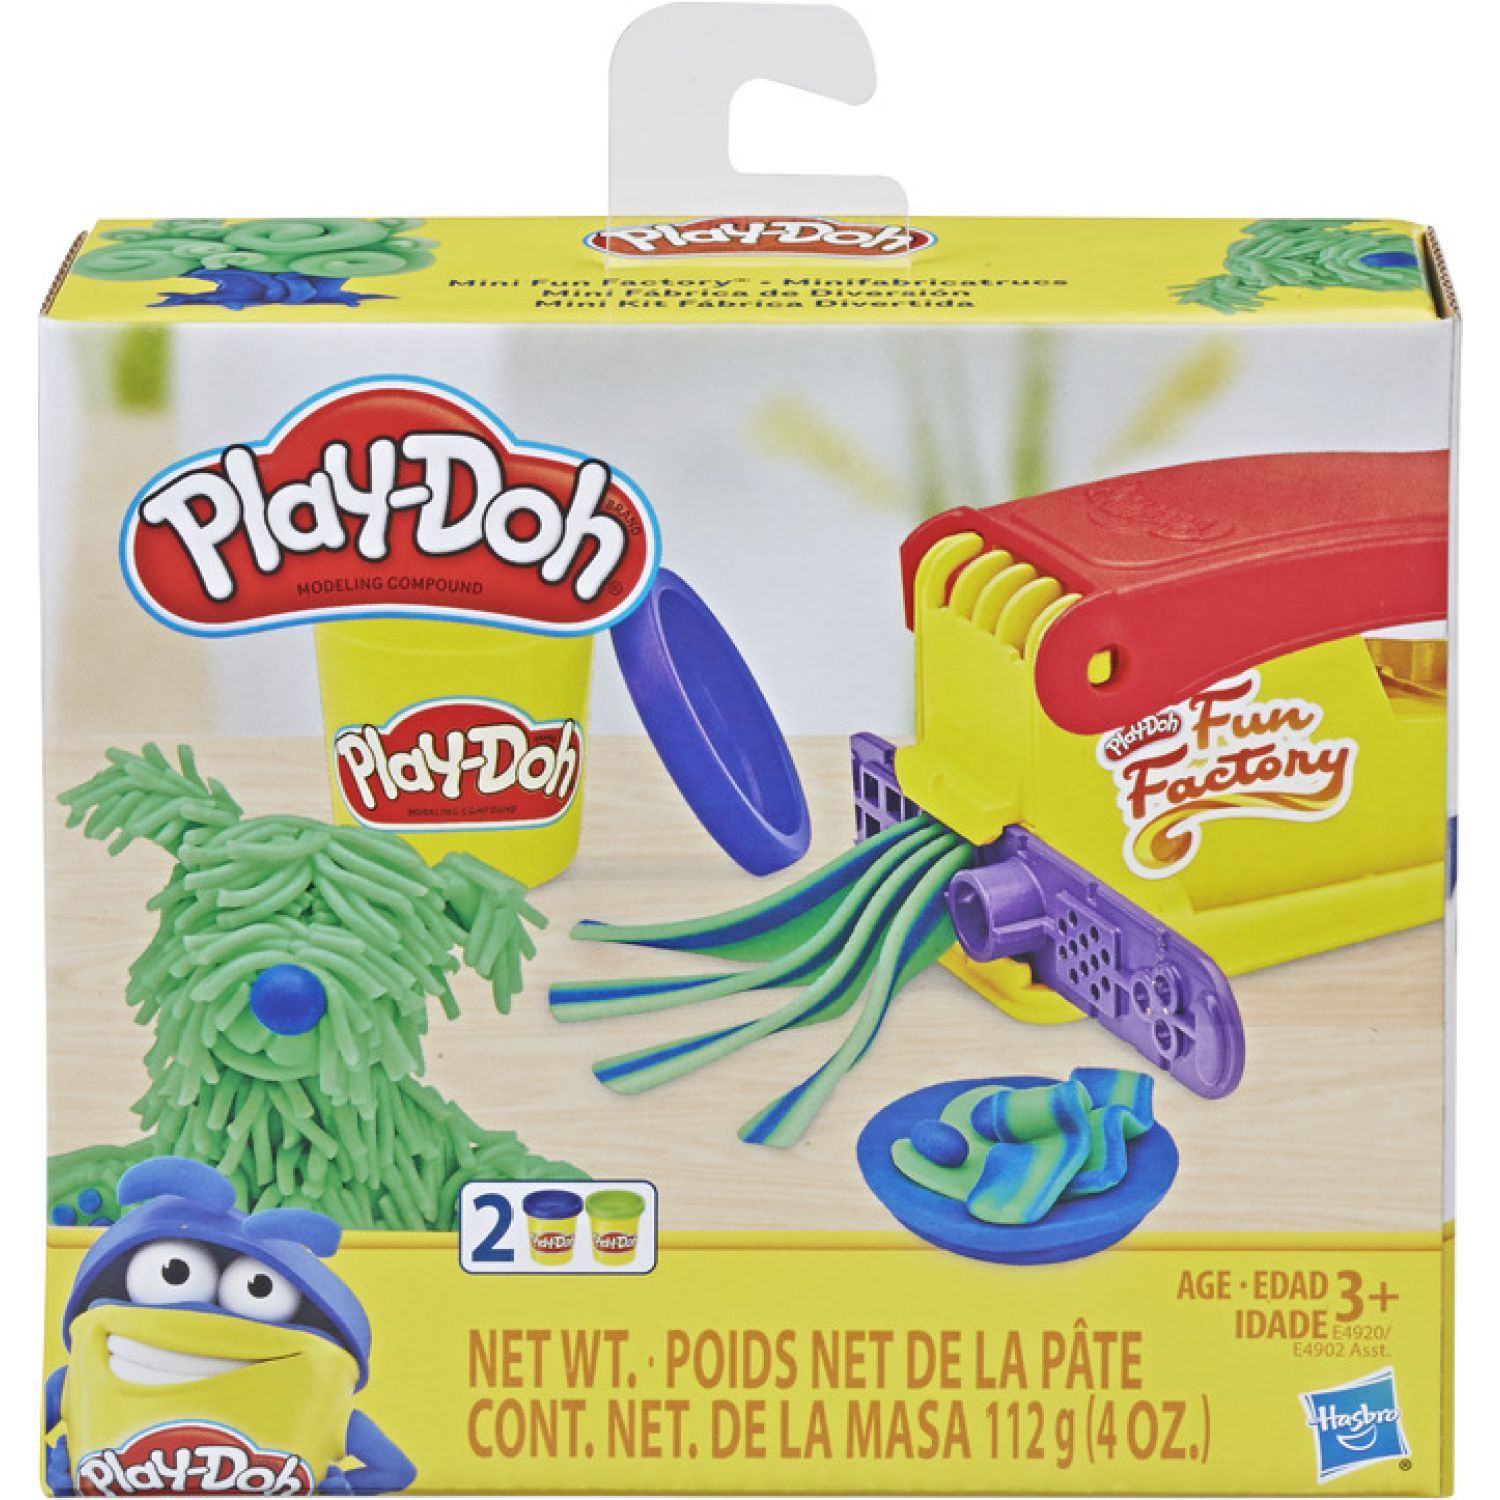 PLAY-DOH PD MINI FUN FACTORY Varios Palitos para moldear y esculturas